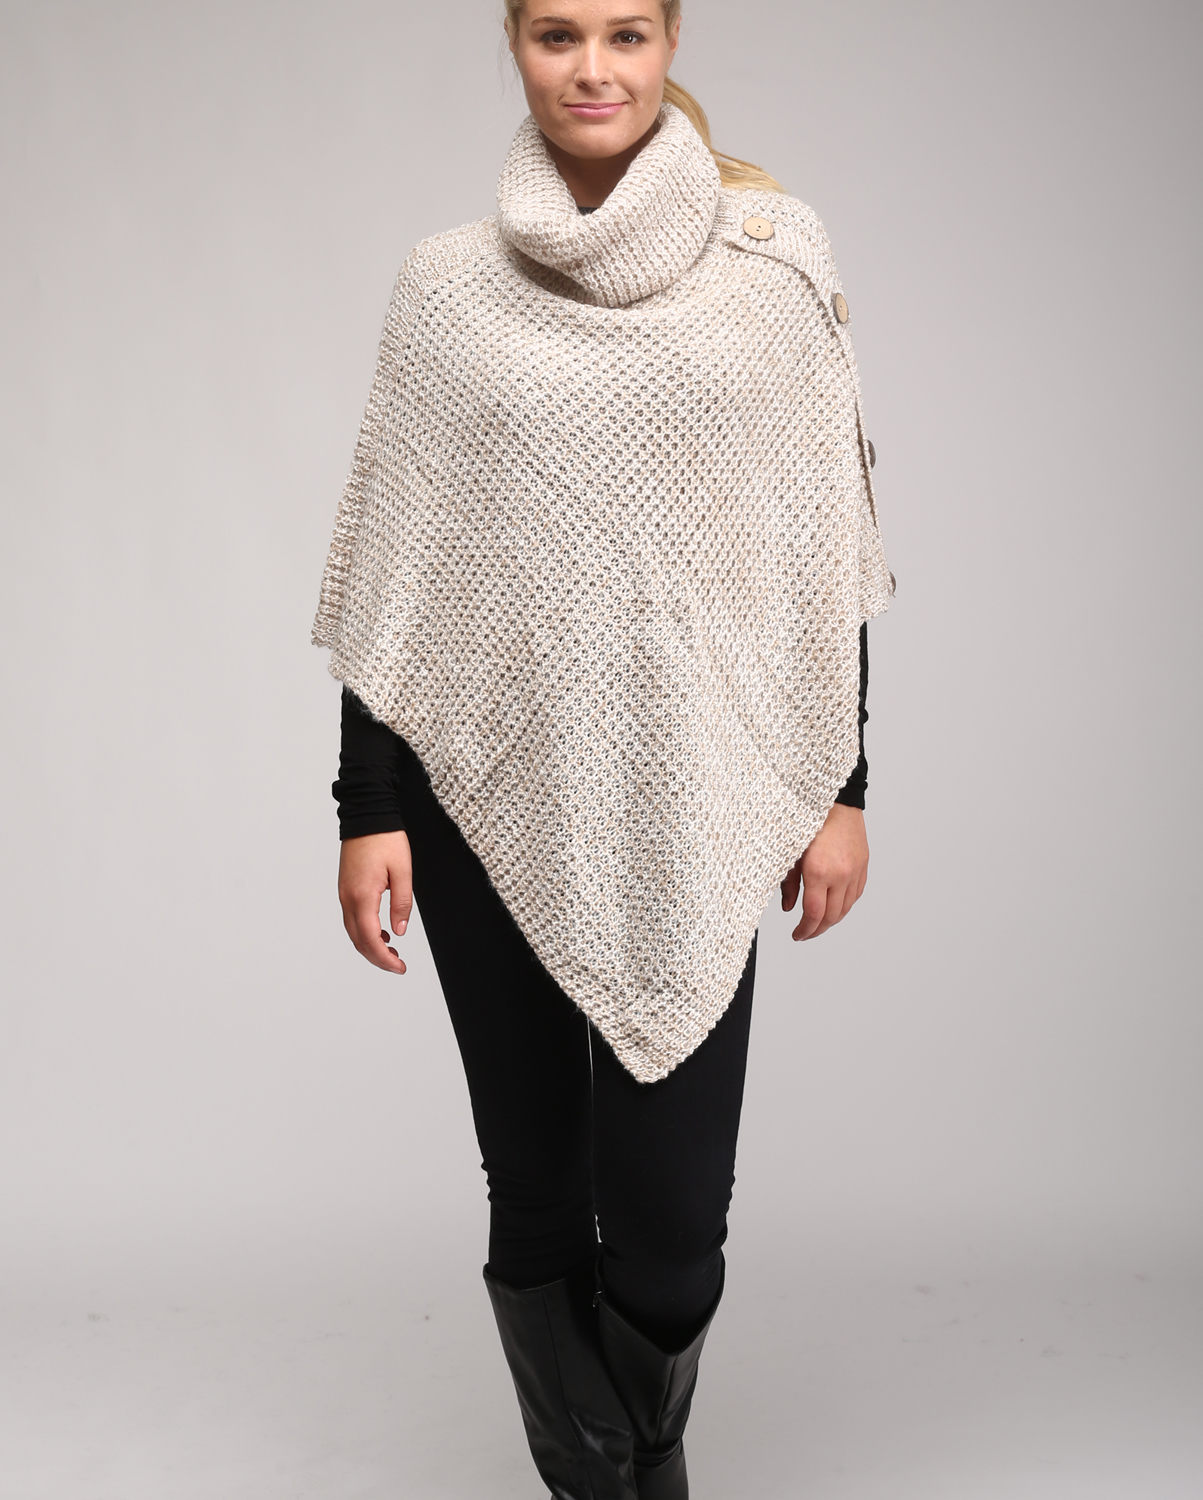 LOF349(TP)-wholesale-poncho-turtleneck-button-two-tone-color-knitted-one-size-acrylic-warm-cute-fashion-chic(0).jpg